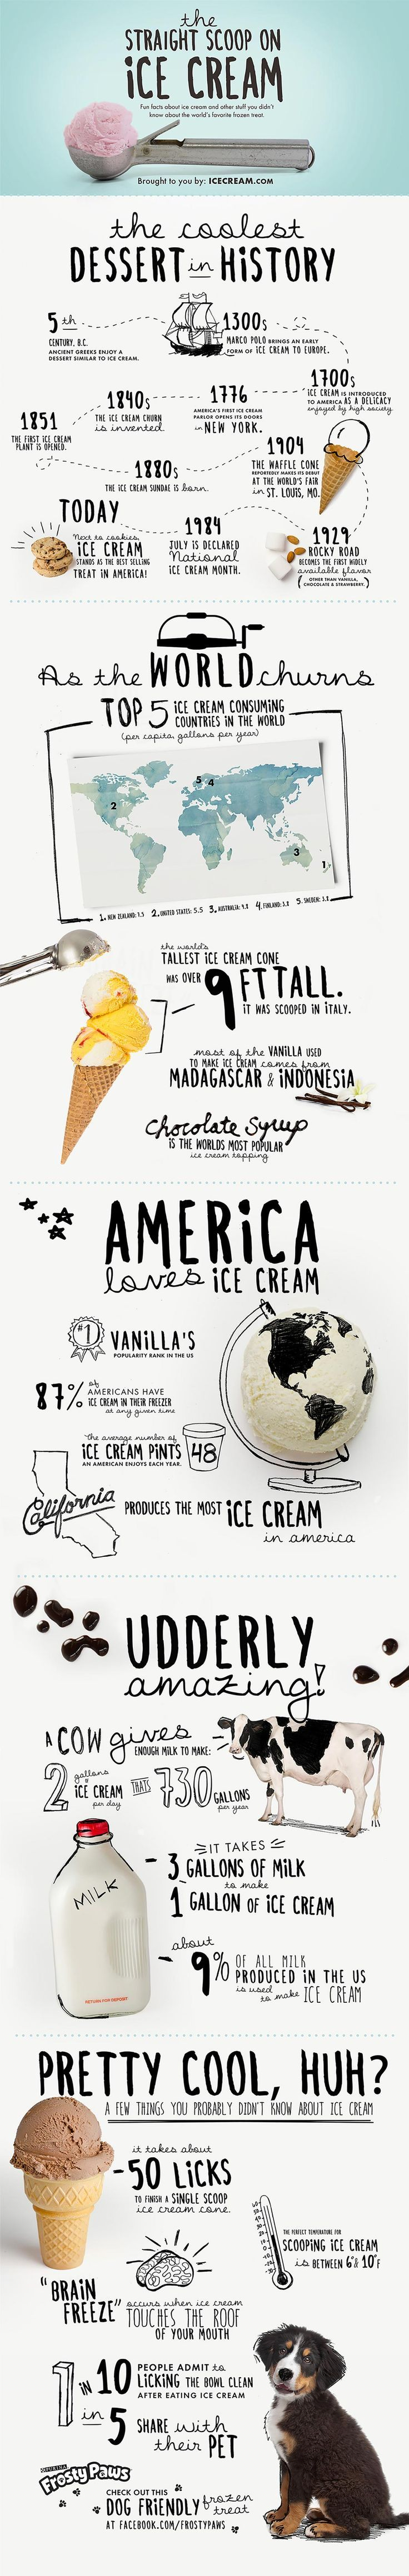 The Straight Scoop on Ice Cream - Fun facts about ice cream and other stuff you didn't know about the world's favorite frozen treat.